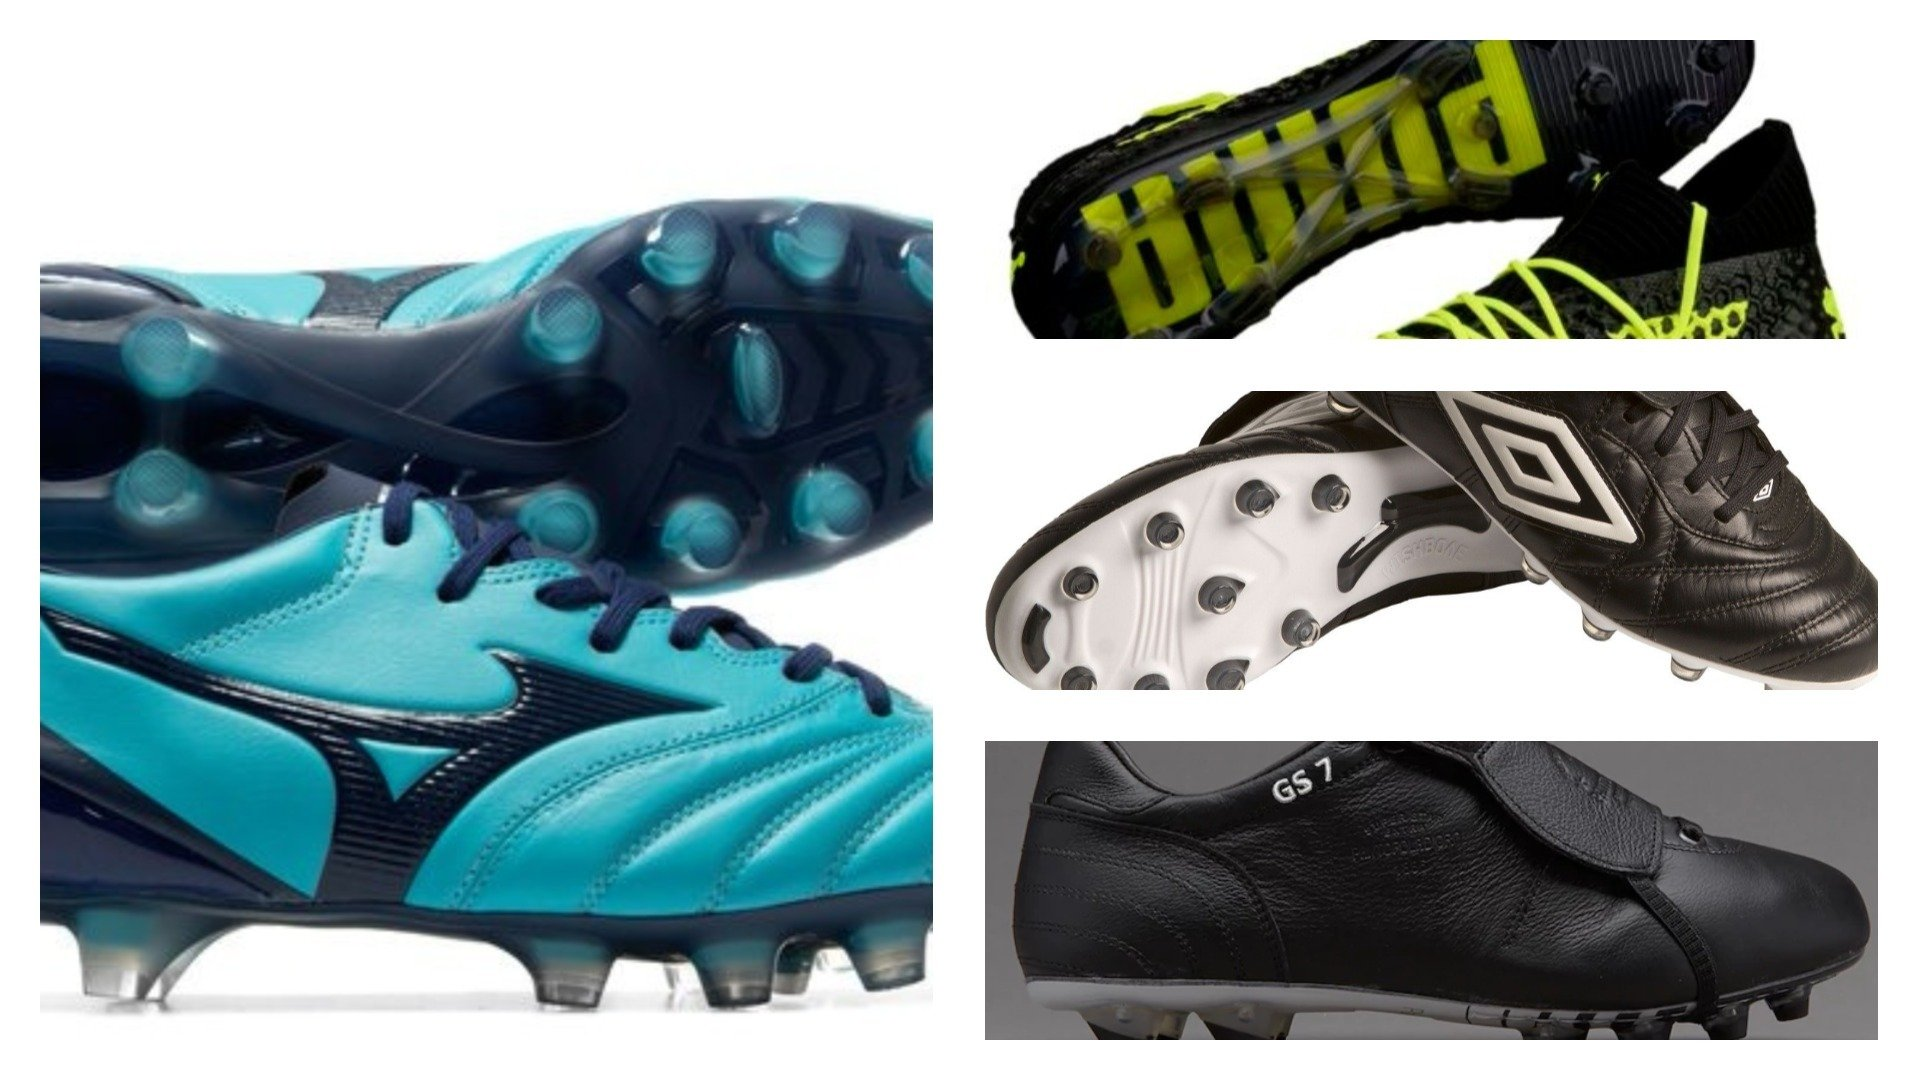 b88b7a186 Best football boots 2019: The best football boots, from £17 to £200 |  Expert Reviews